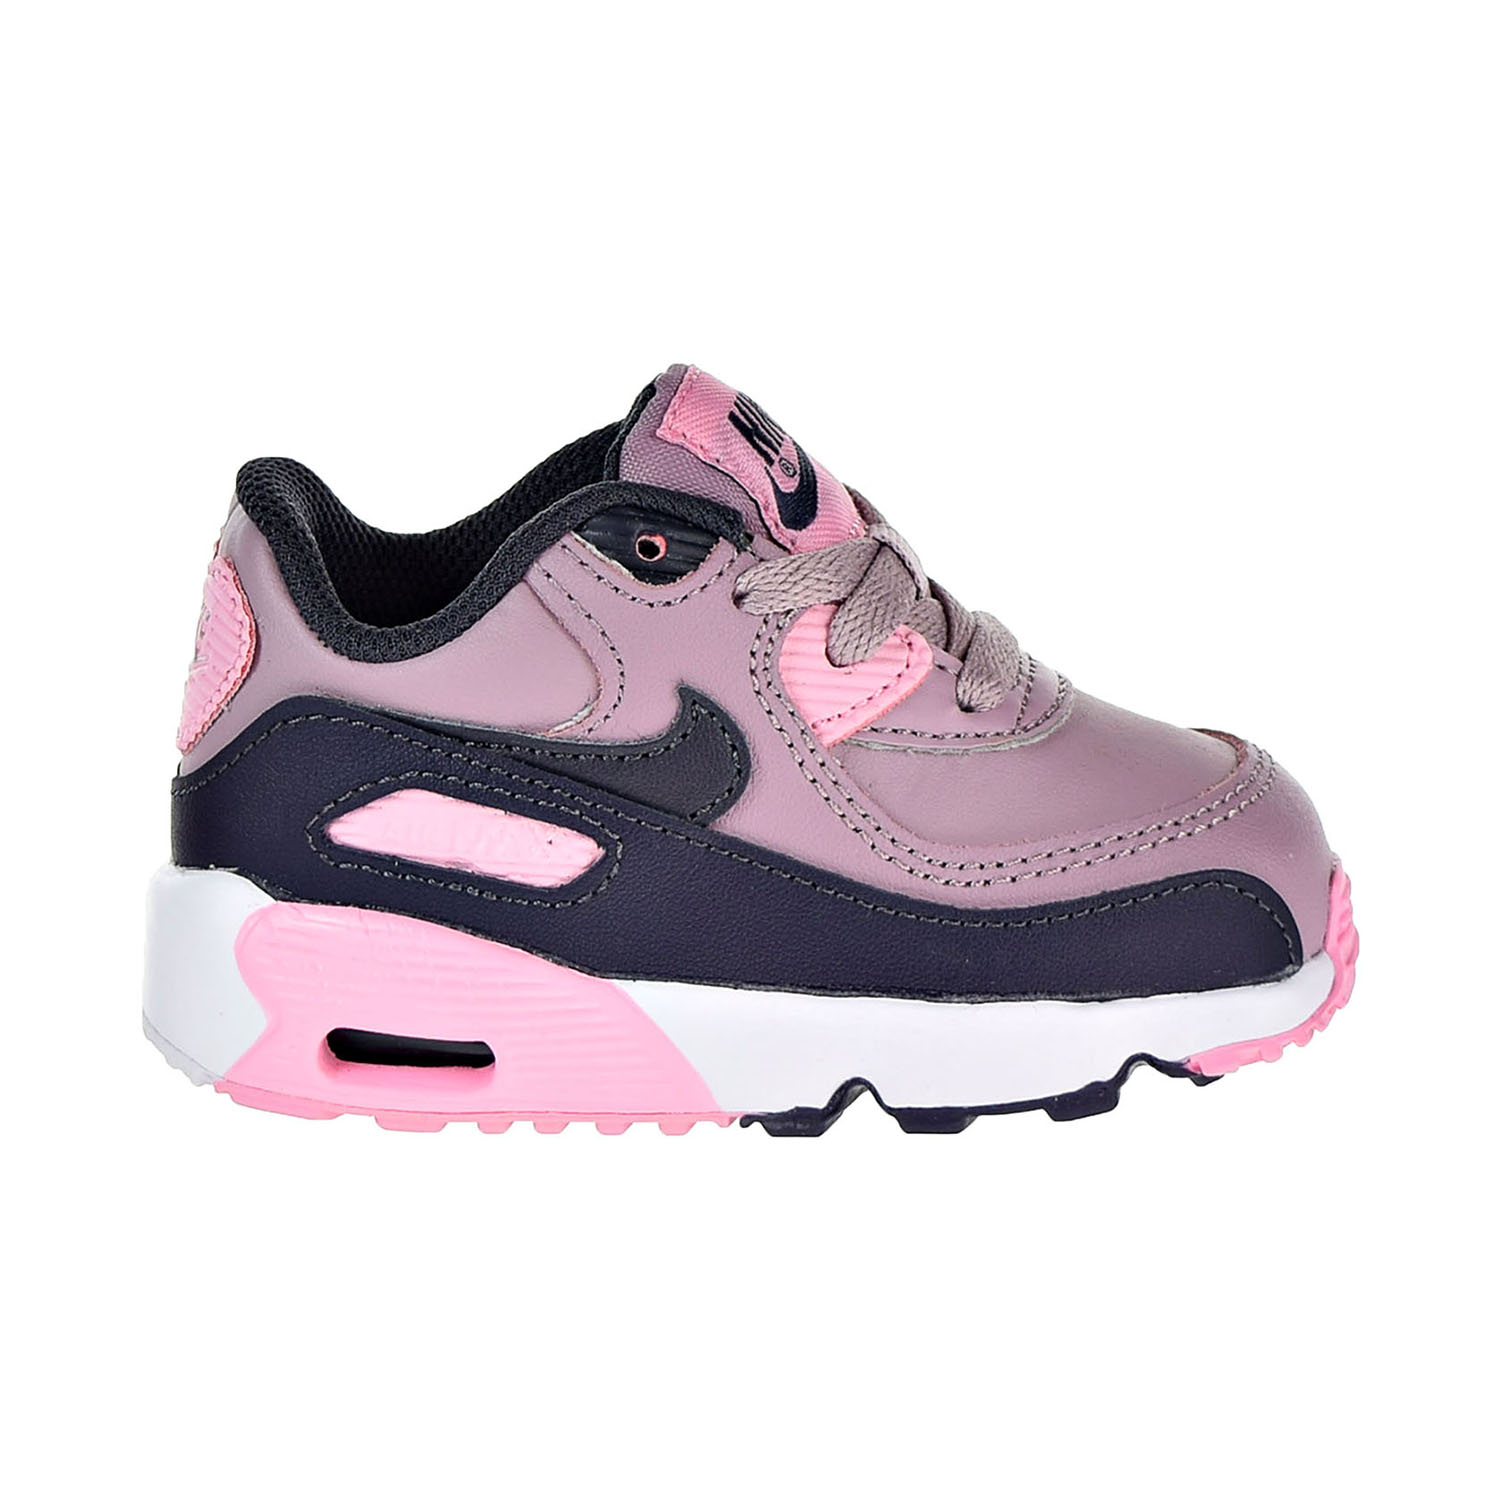 8cfb37fa998 Details about Nike Air Max 90 Leather Toddler s Shoes Elemental Rose  833379-602